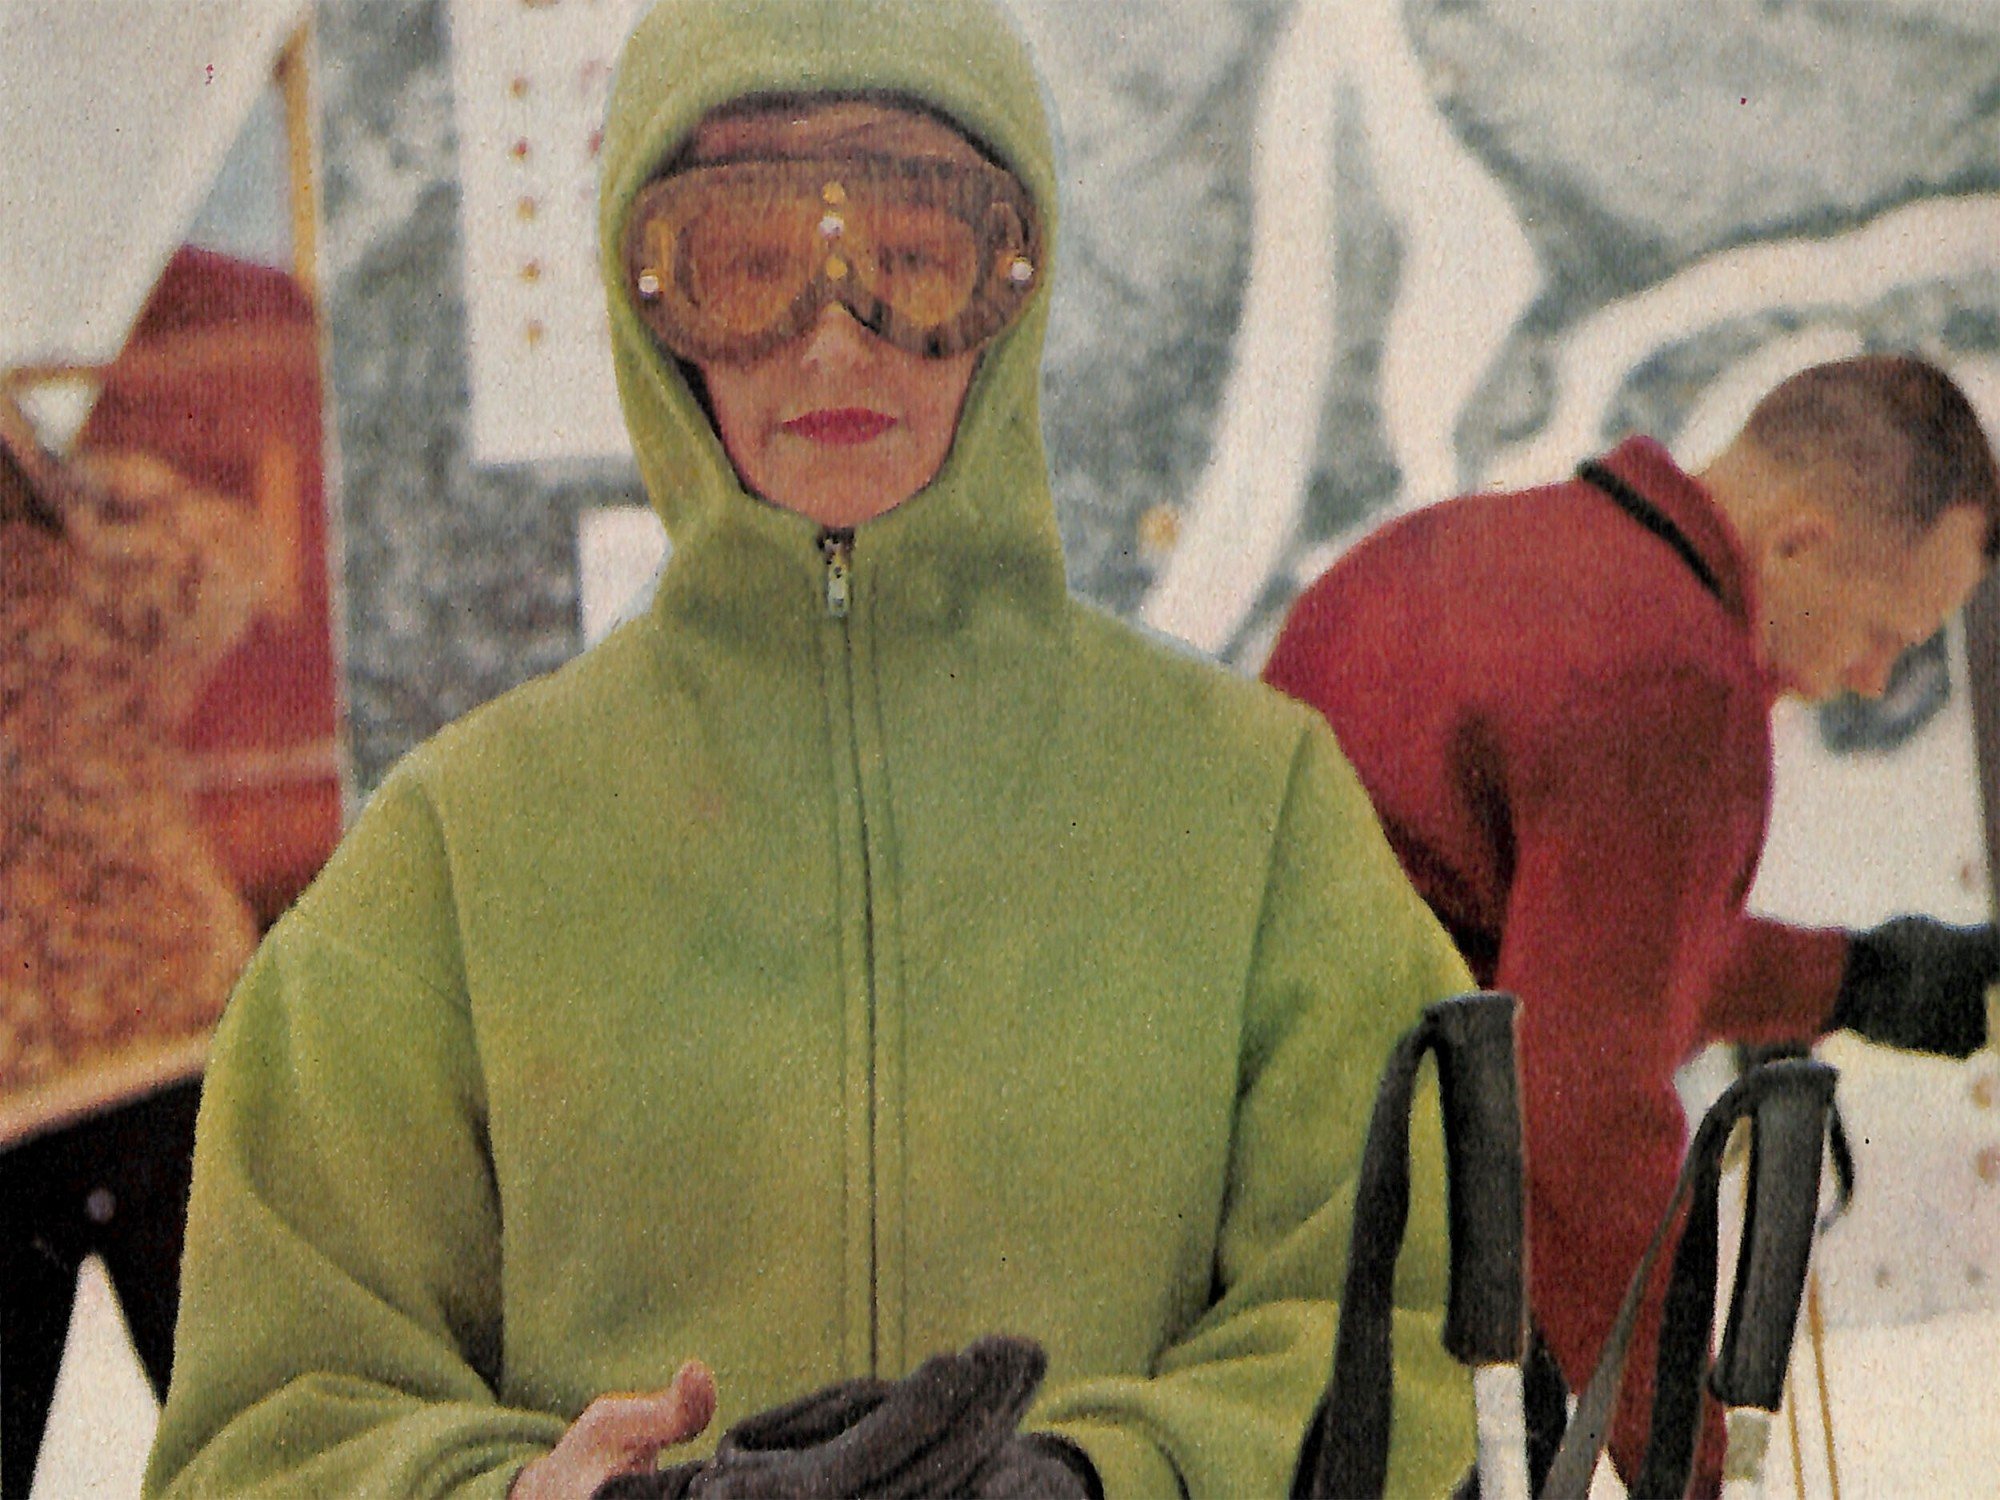 Fashions on the slope - 1963